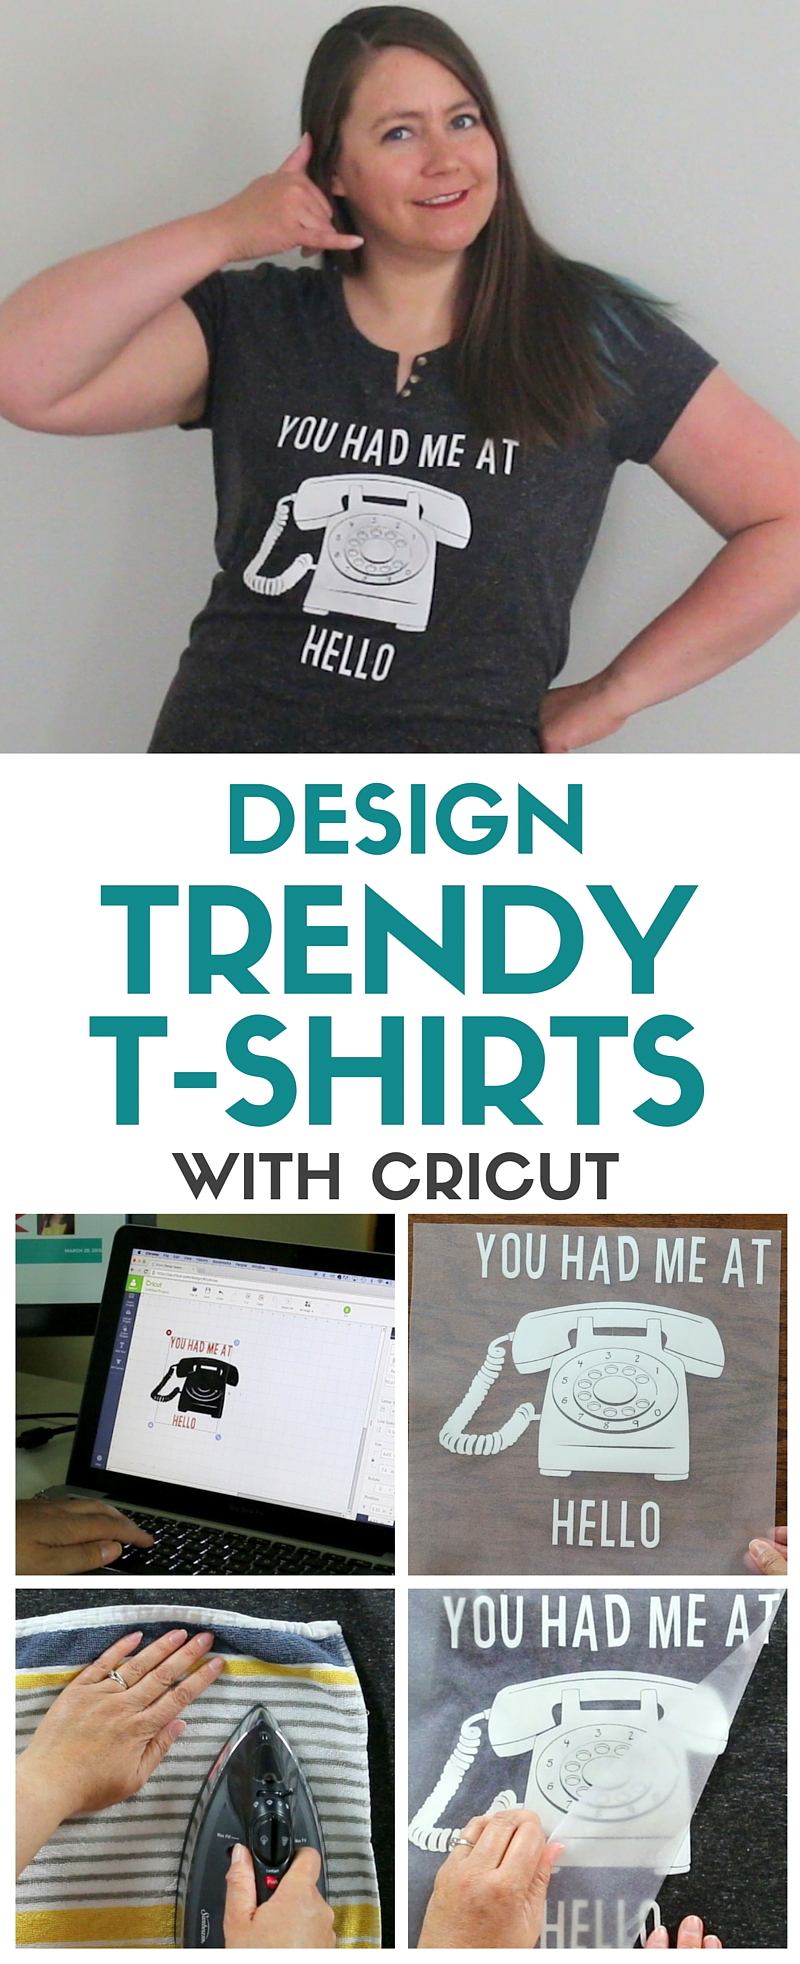 Design Trendy T Shirts With Cricut Page 2 Of 2 The Crafty Blog Stalker